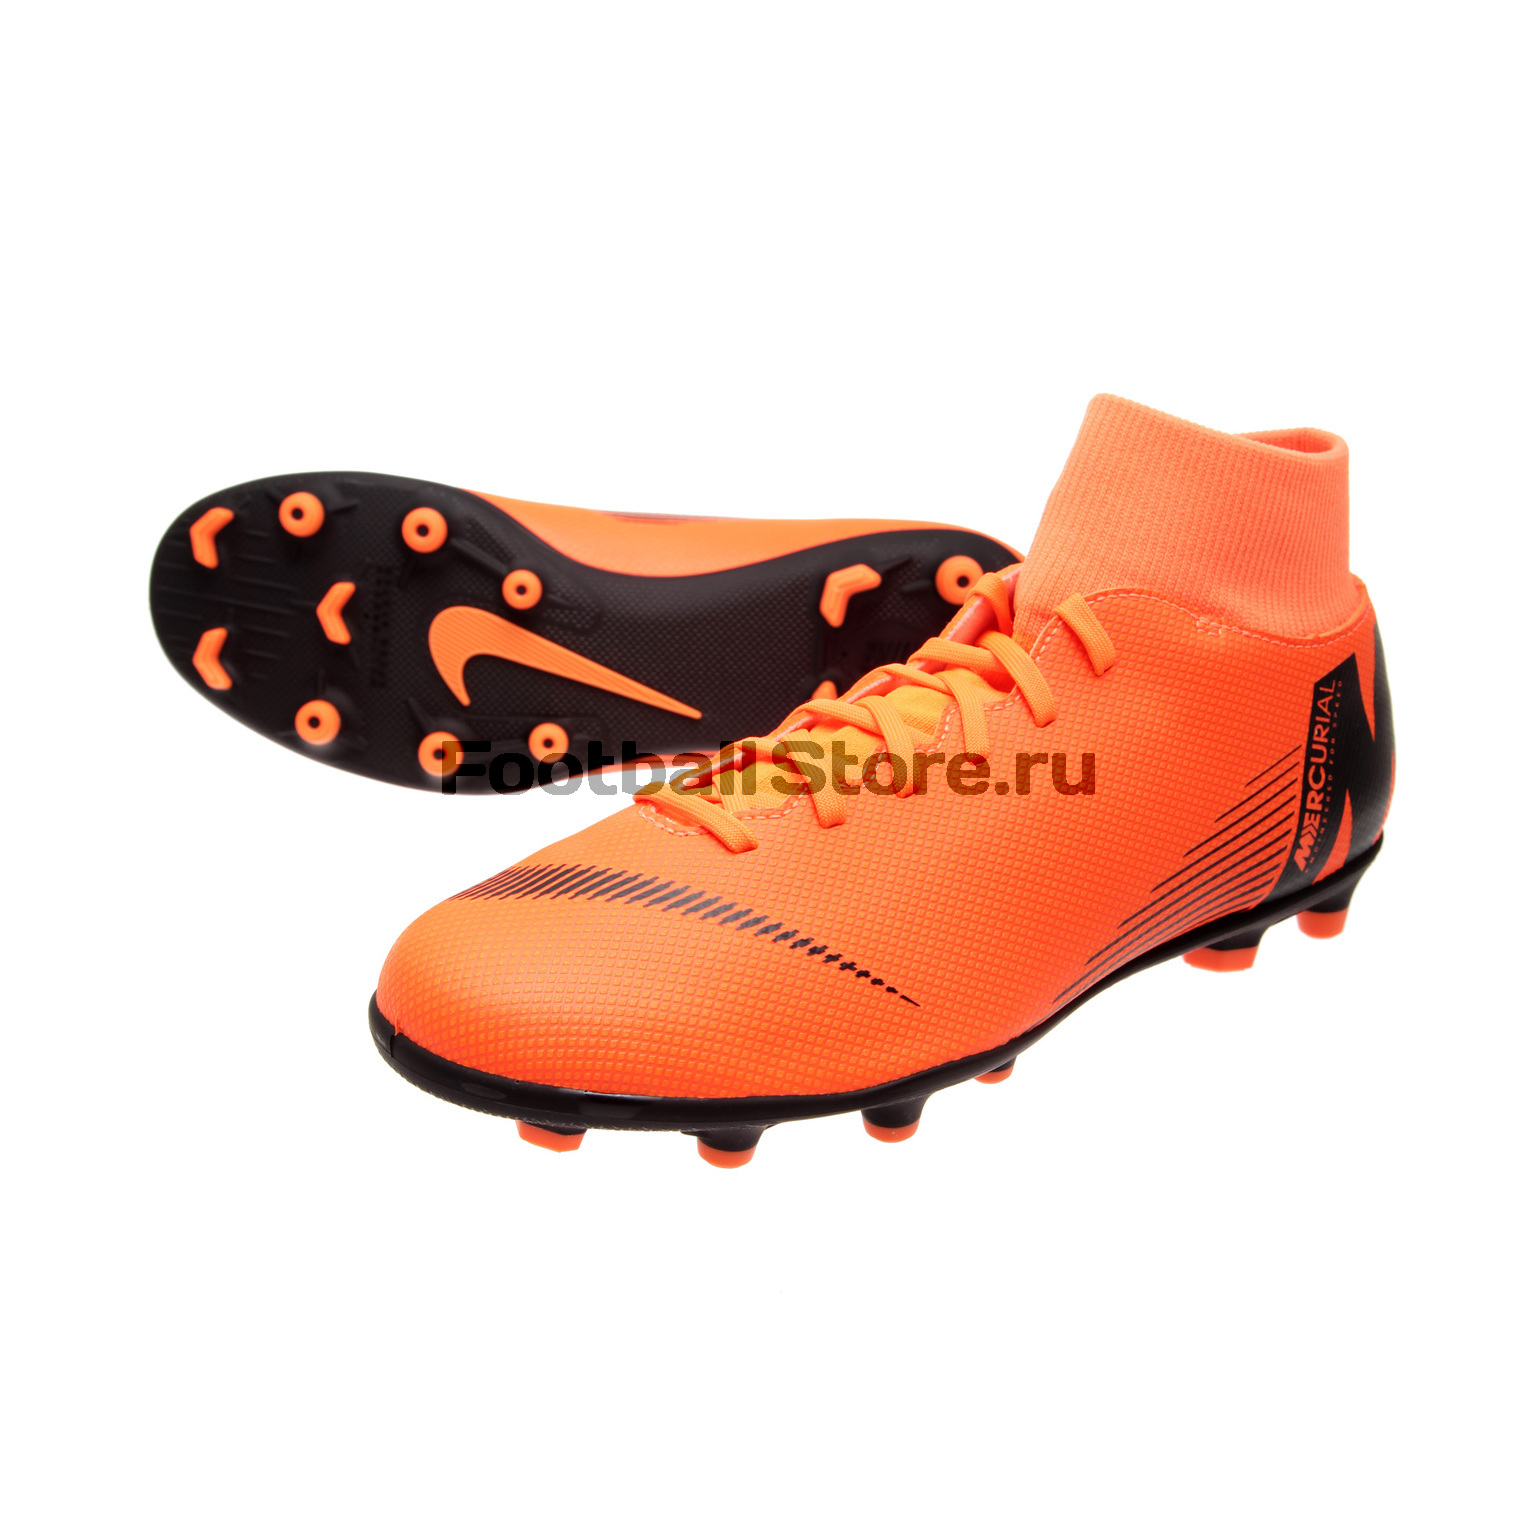 Бутсы Nike SuperFly 6 Club FG/MG AH7363-810 бутсы nike hypervenom phantom iii club fg jrah7290 081